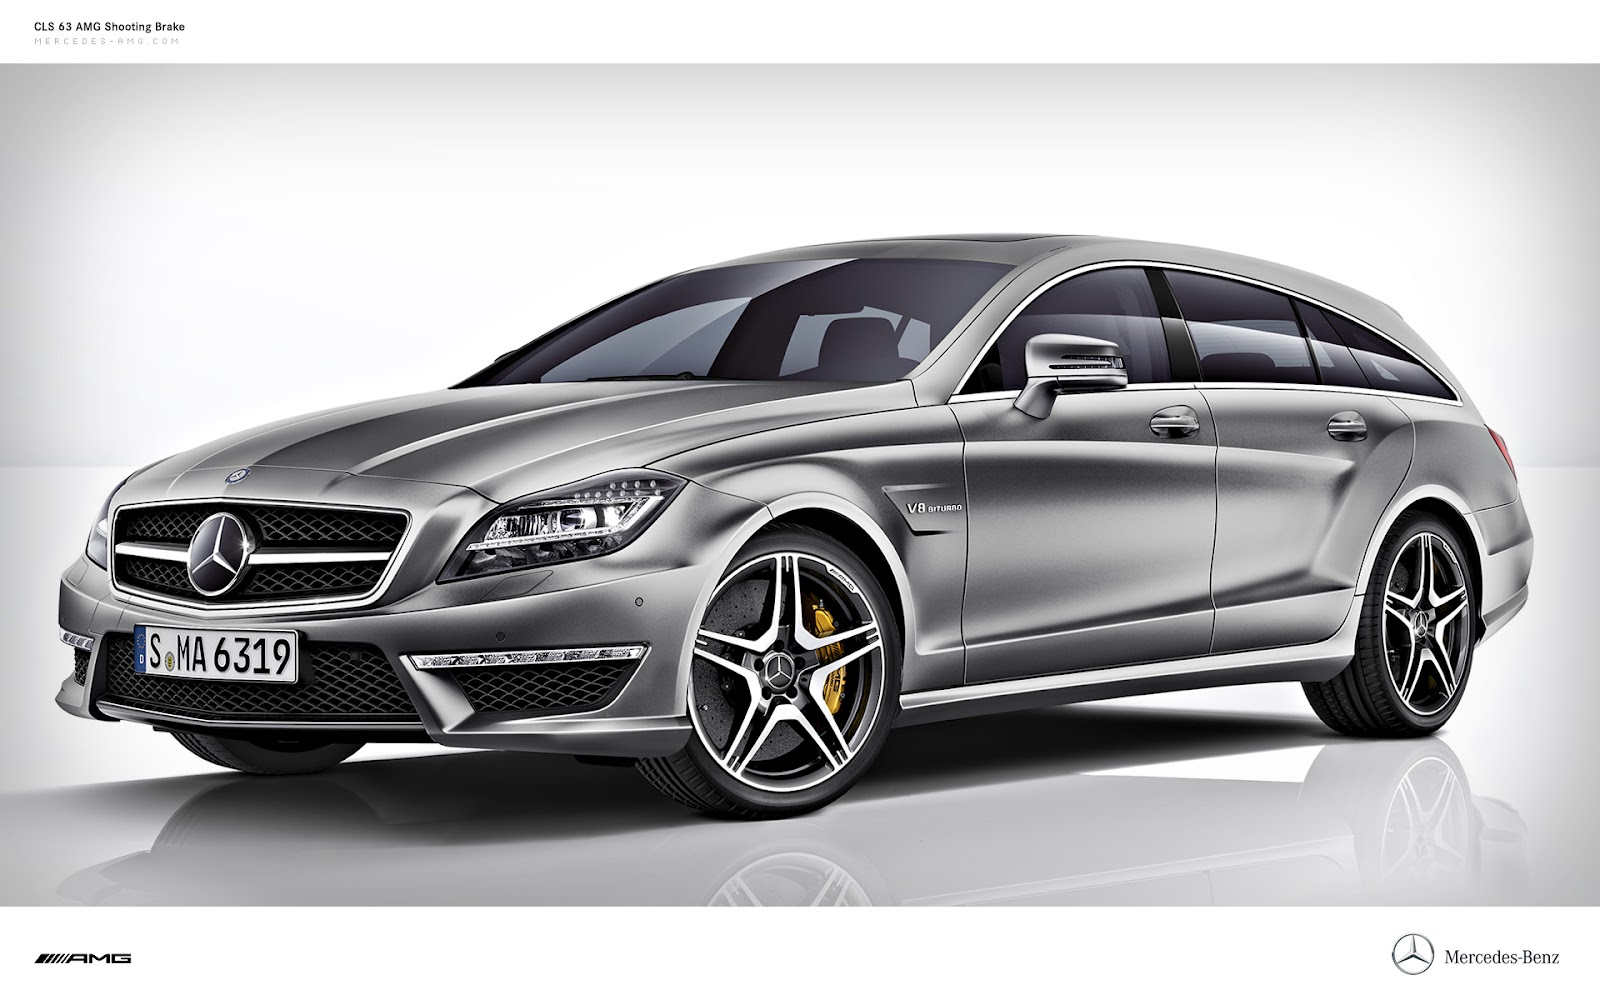 our dream cars 2013 mercedes benz cls 63 amg shooting brake. Black Bedroom Furniture Sets. Home Design Ideas